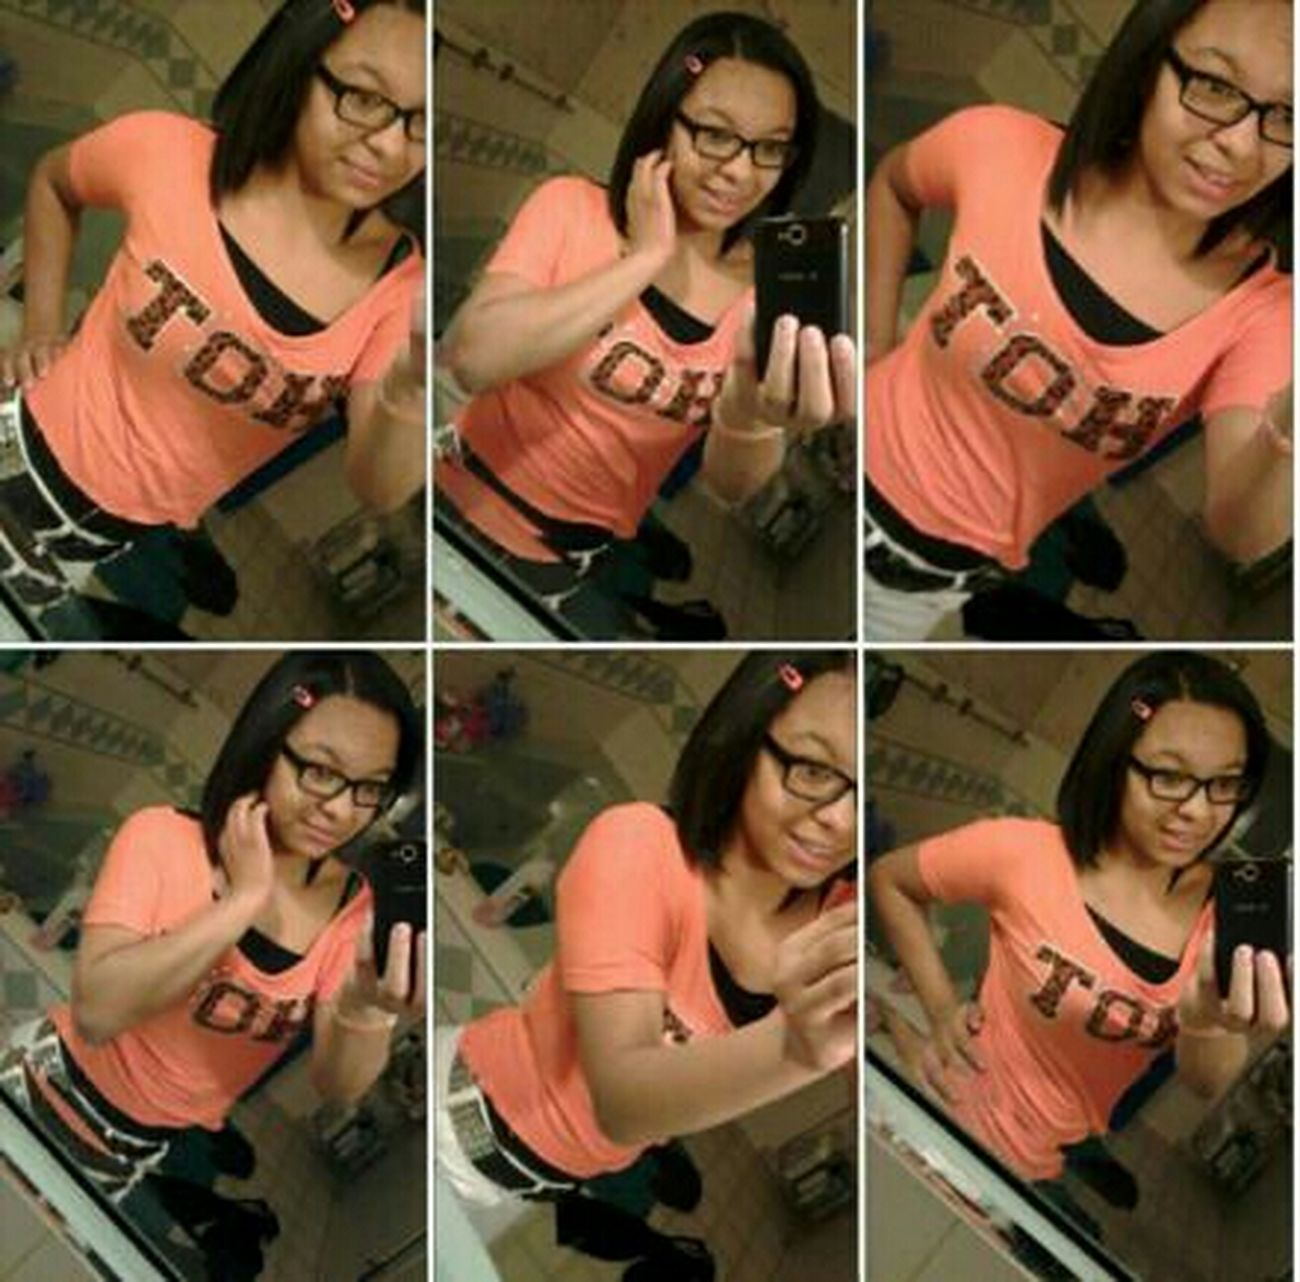 #nofilter, took this Friday before school. all 6mes lol